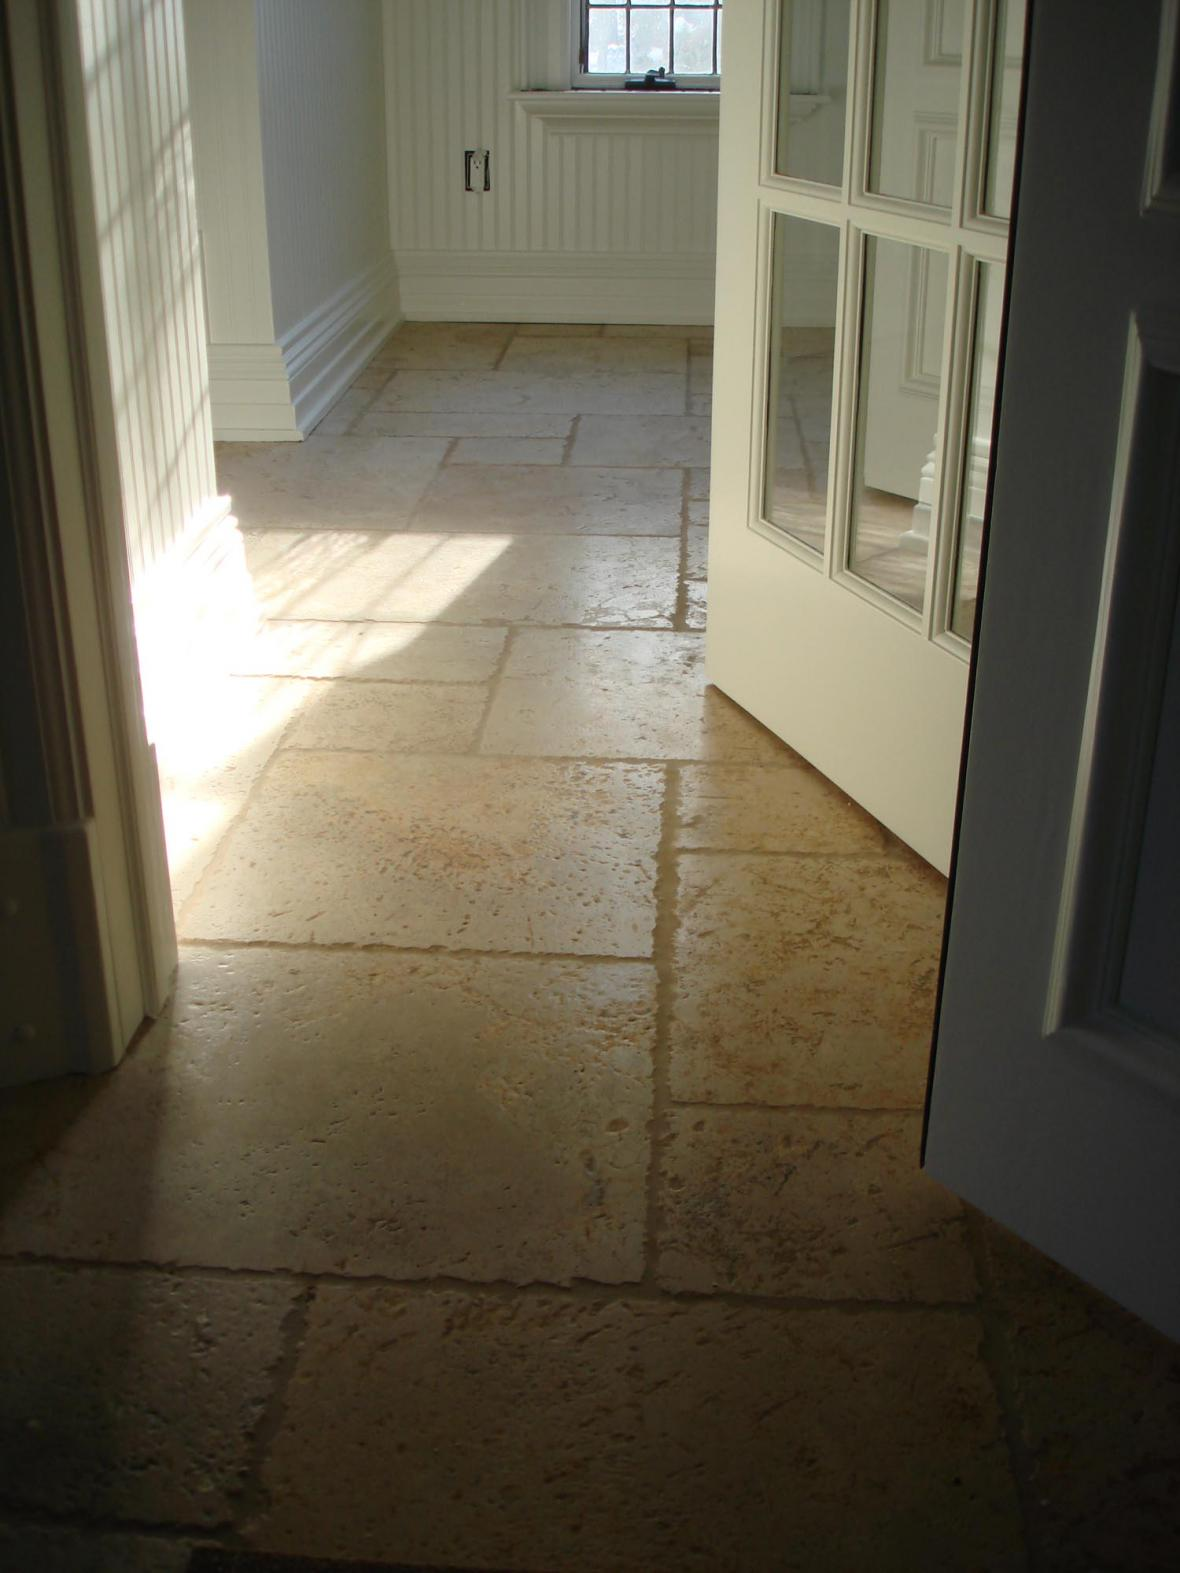 Tumbled marble floor in laundry room